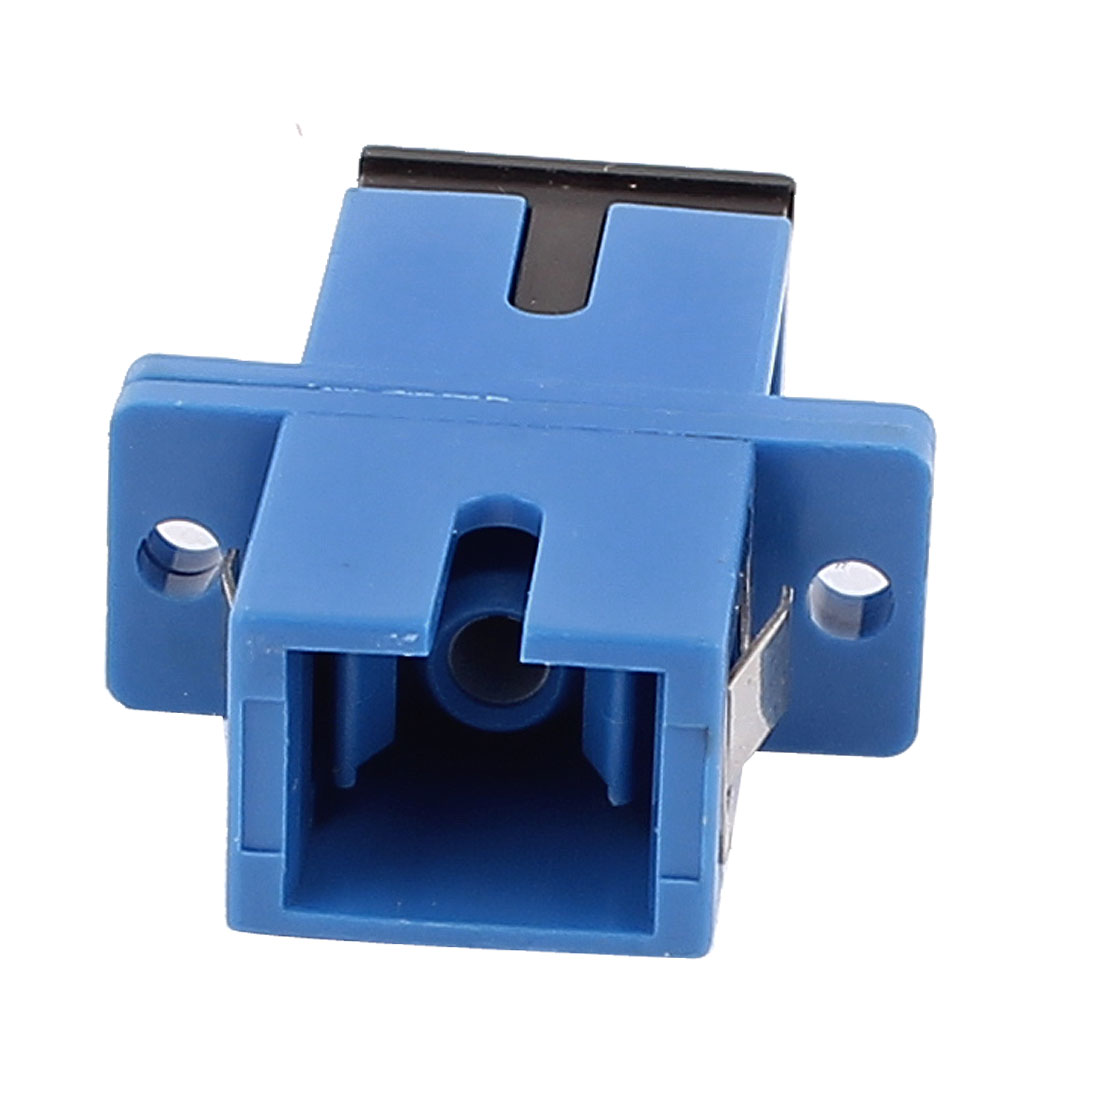 SC/SC Simplex MM SM Fiber Optical Flange Adapter Cable Connector Blue